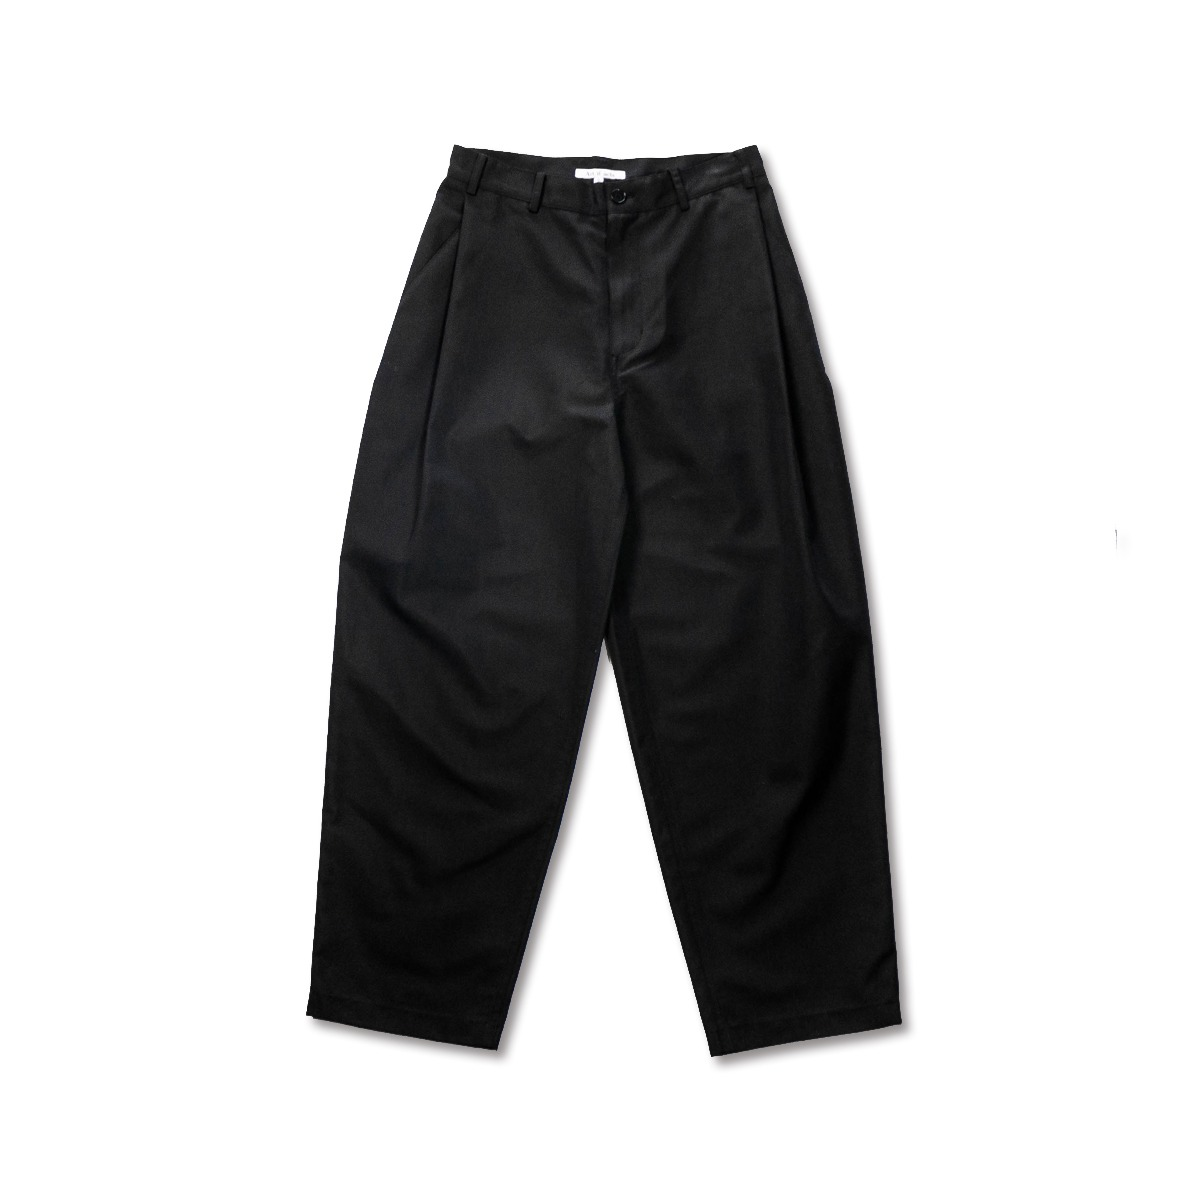 [ART IF ACTS] SIDE TUCKED PANTS 'BLACK'